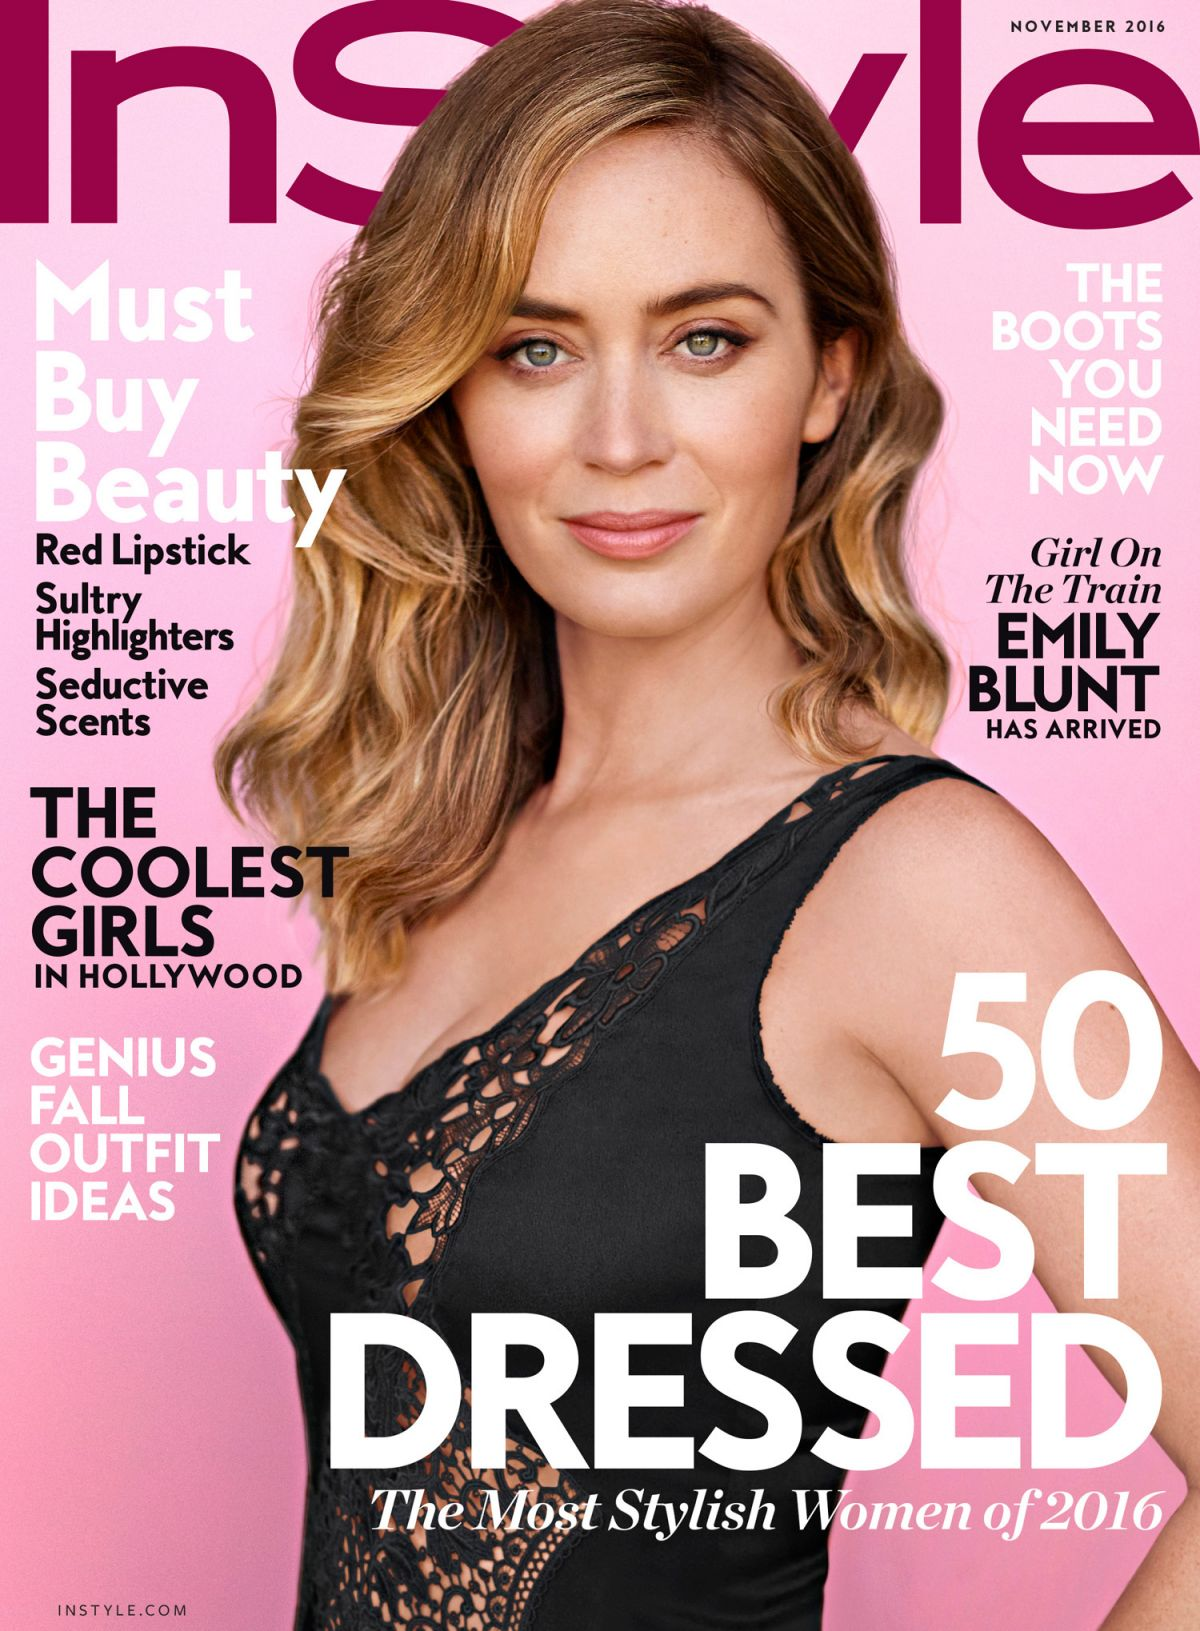 EMILY BLUNT in Instyle Magazine, November 2016 Issue